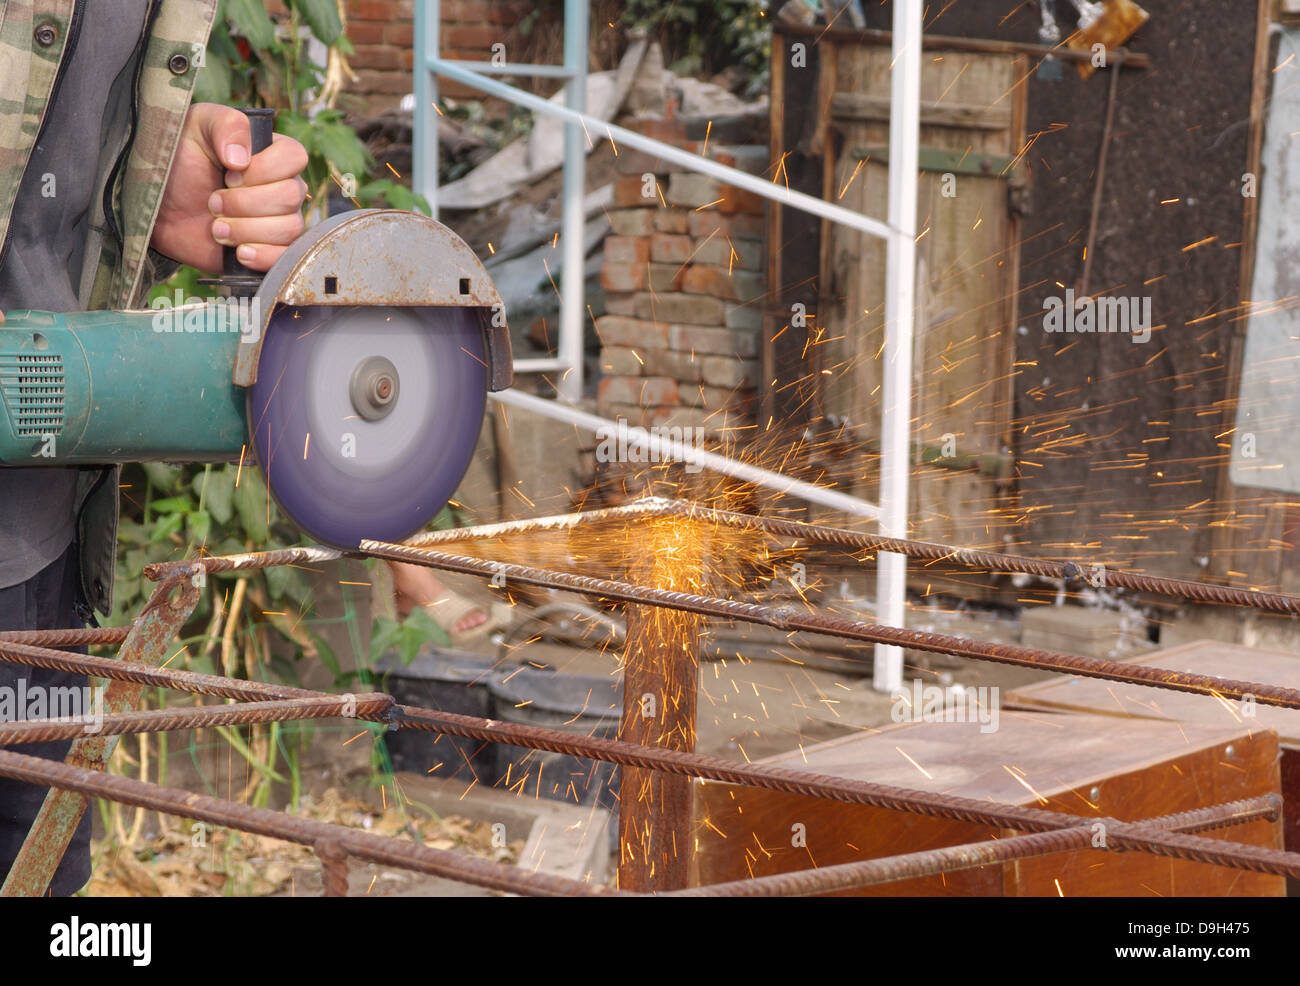 Angle Grinder Metal sawing with flashing sparks close up and Repairman hands home repair garden working summer time - Stock Image